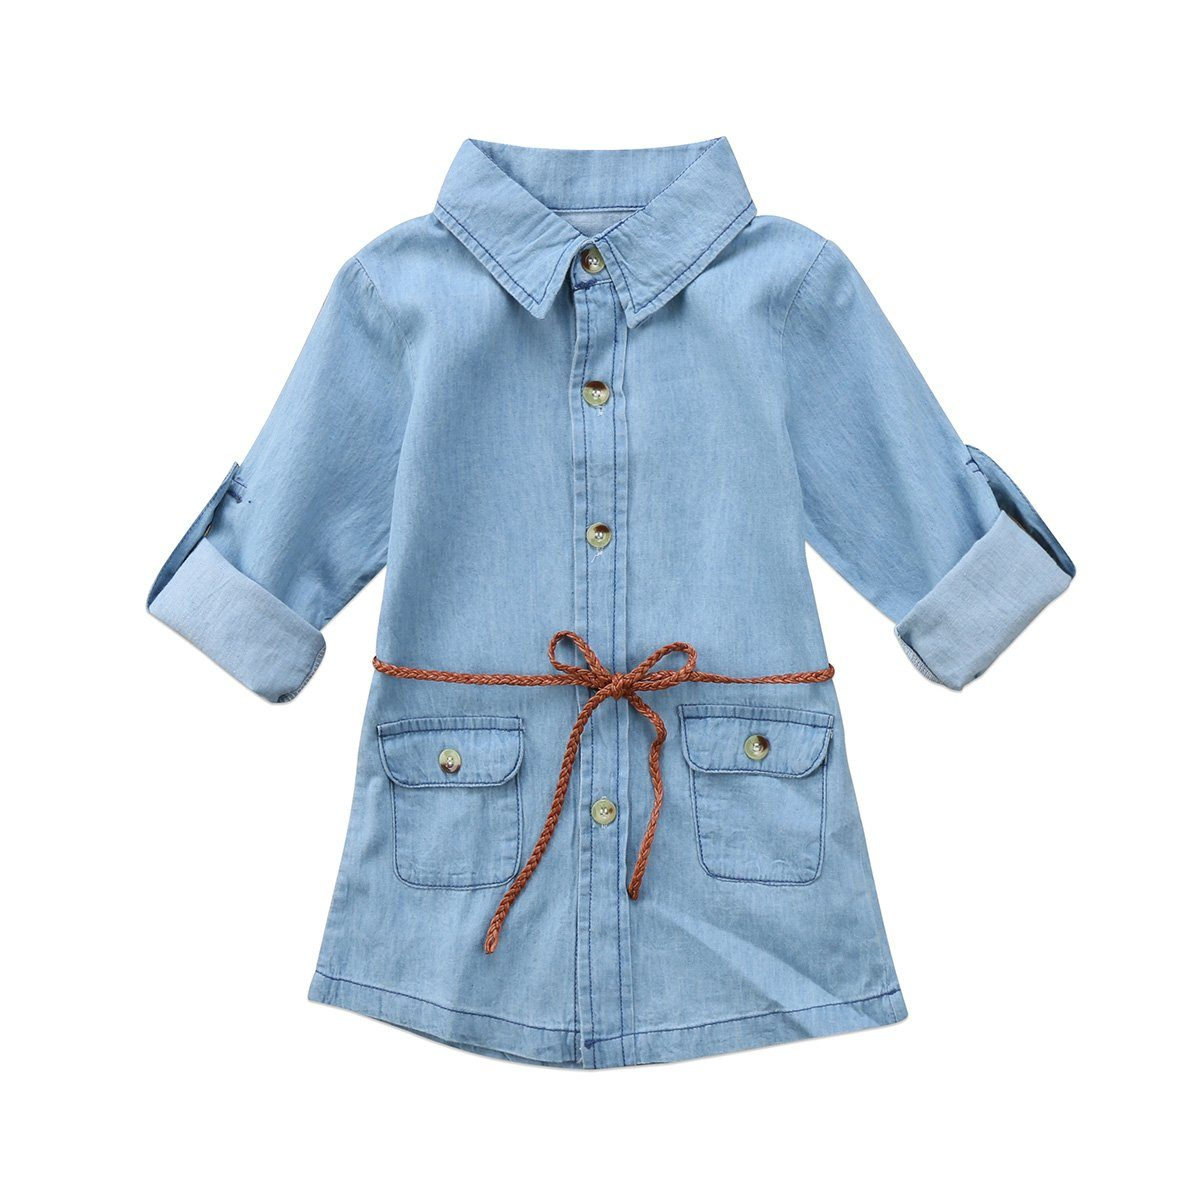 Denim Collar Dress - The Trendy Toddlers